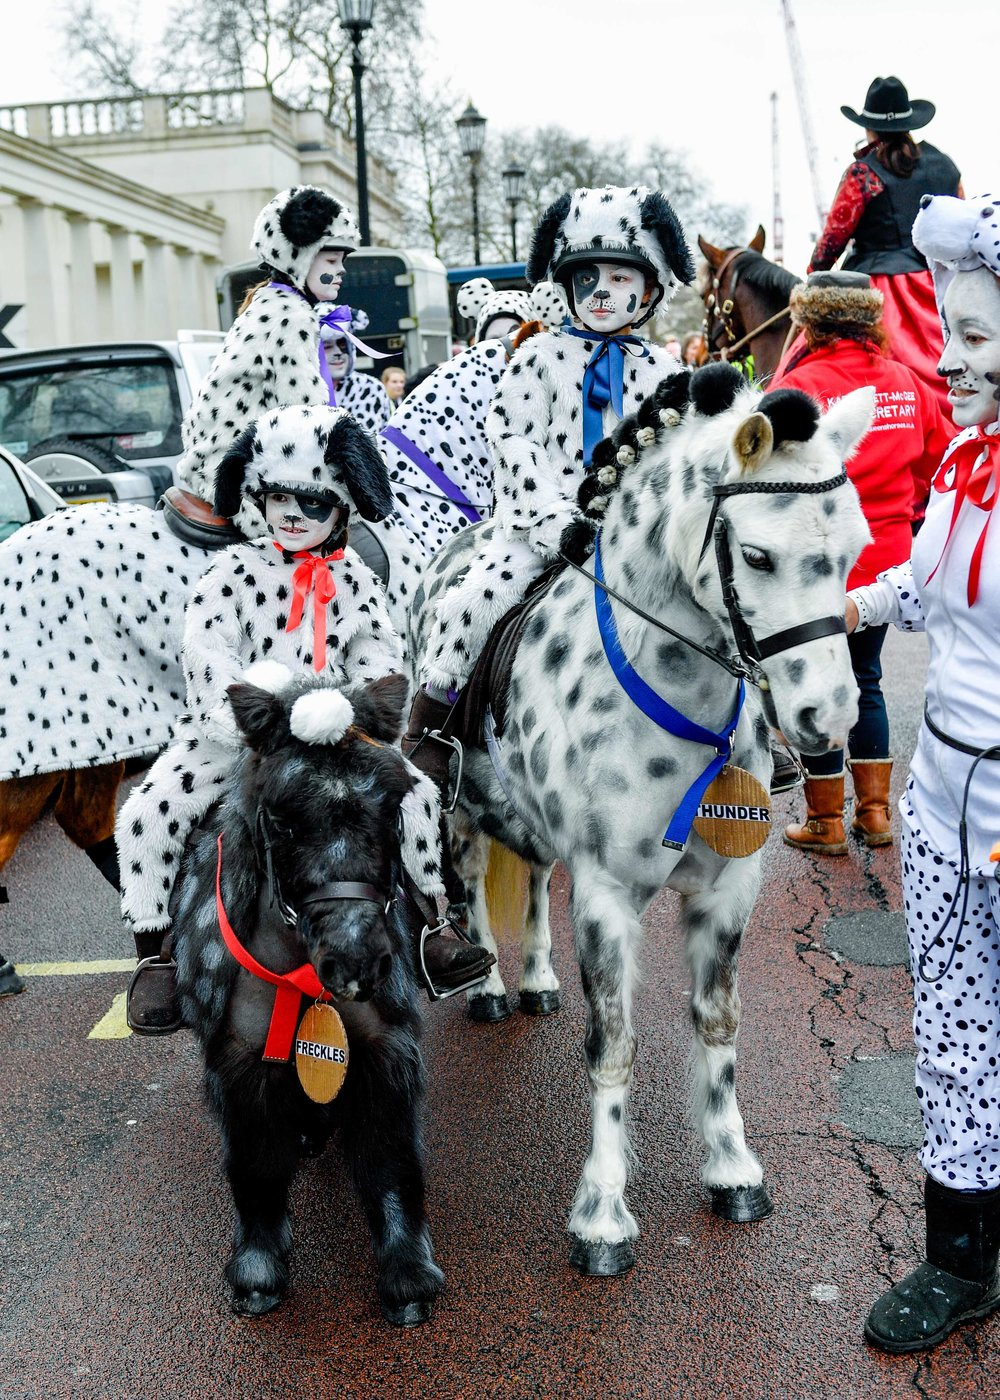 The 101 Dalmatians marched as part of the New Years day parade